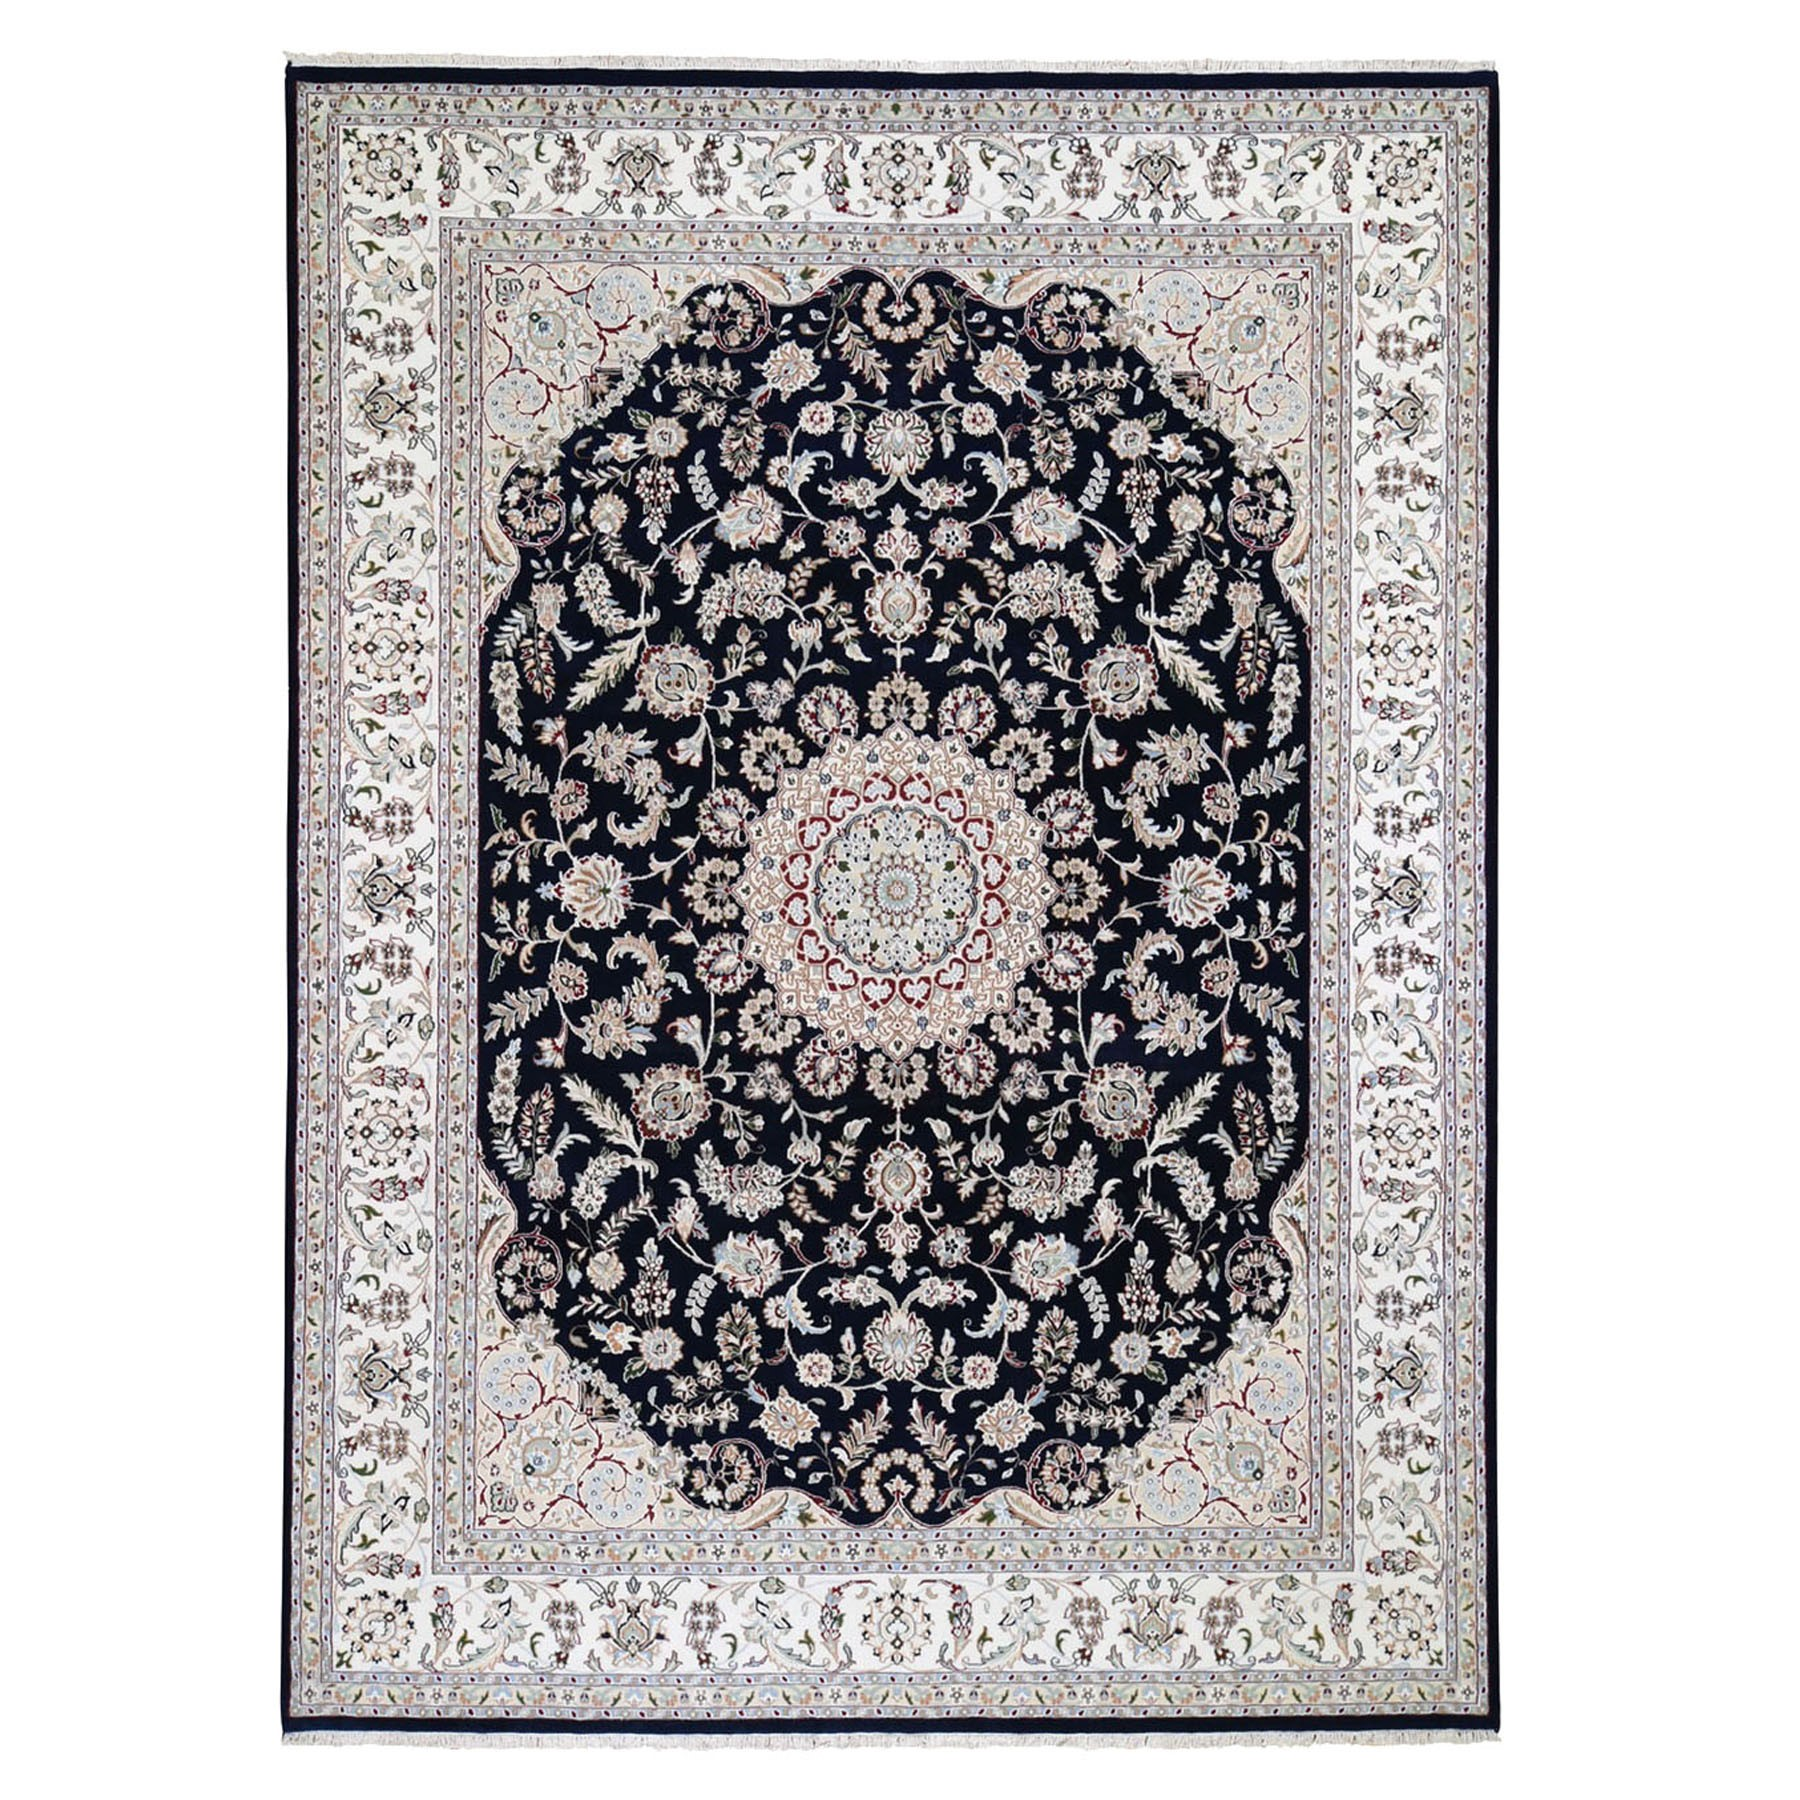 9'x12' Navy Blue Nain Wool and Silk 250 Kpsi Hand Woven Oriental Rug